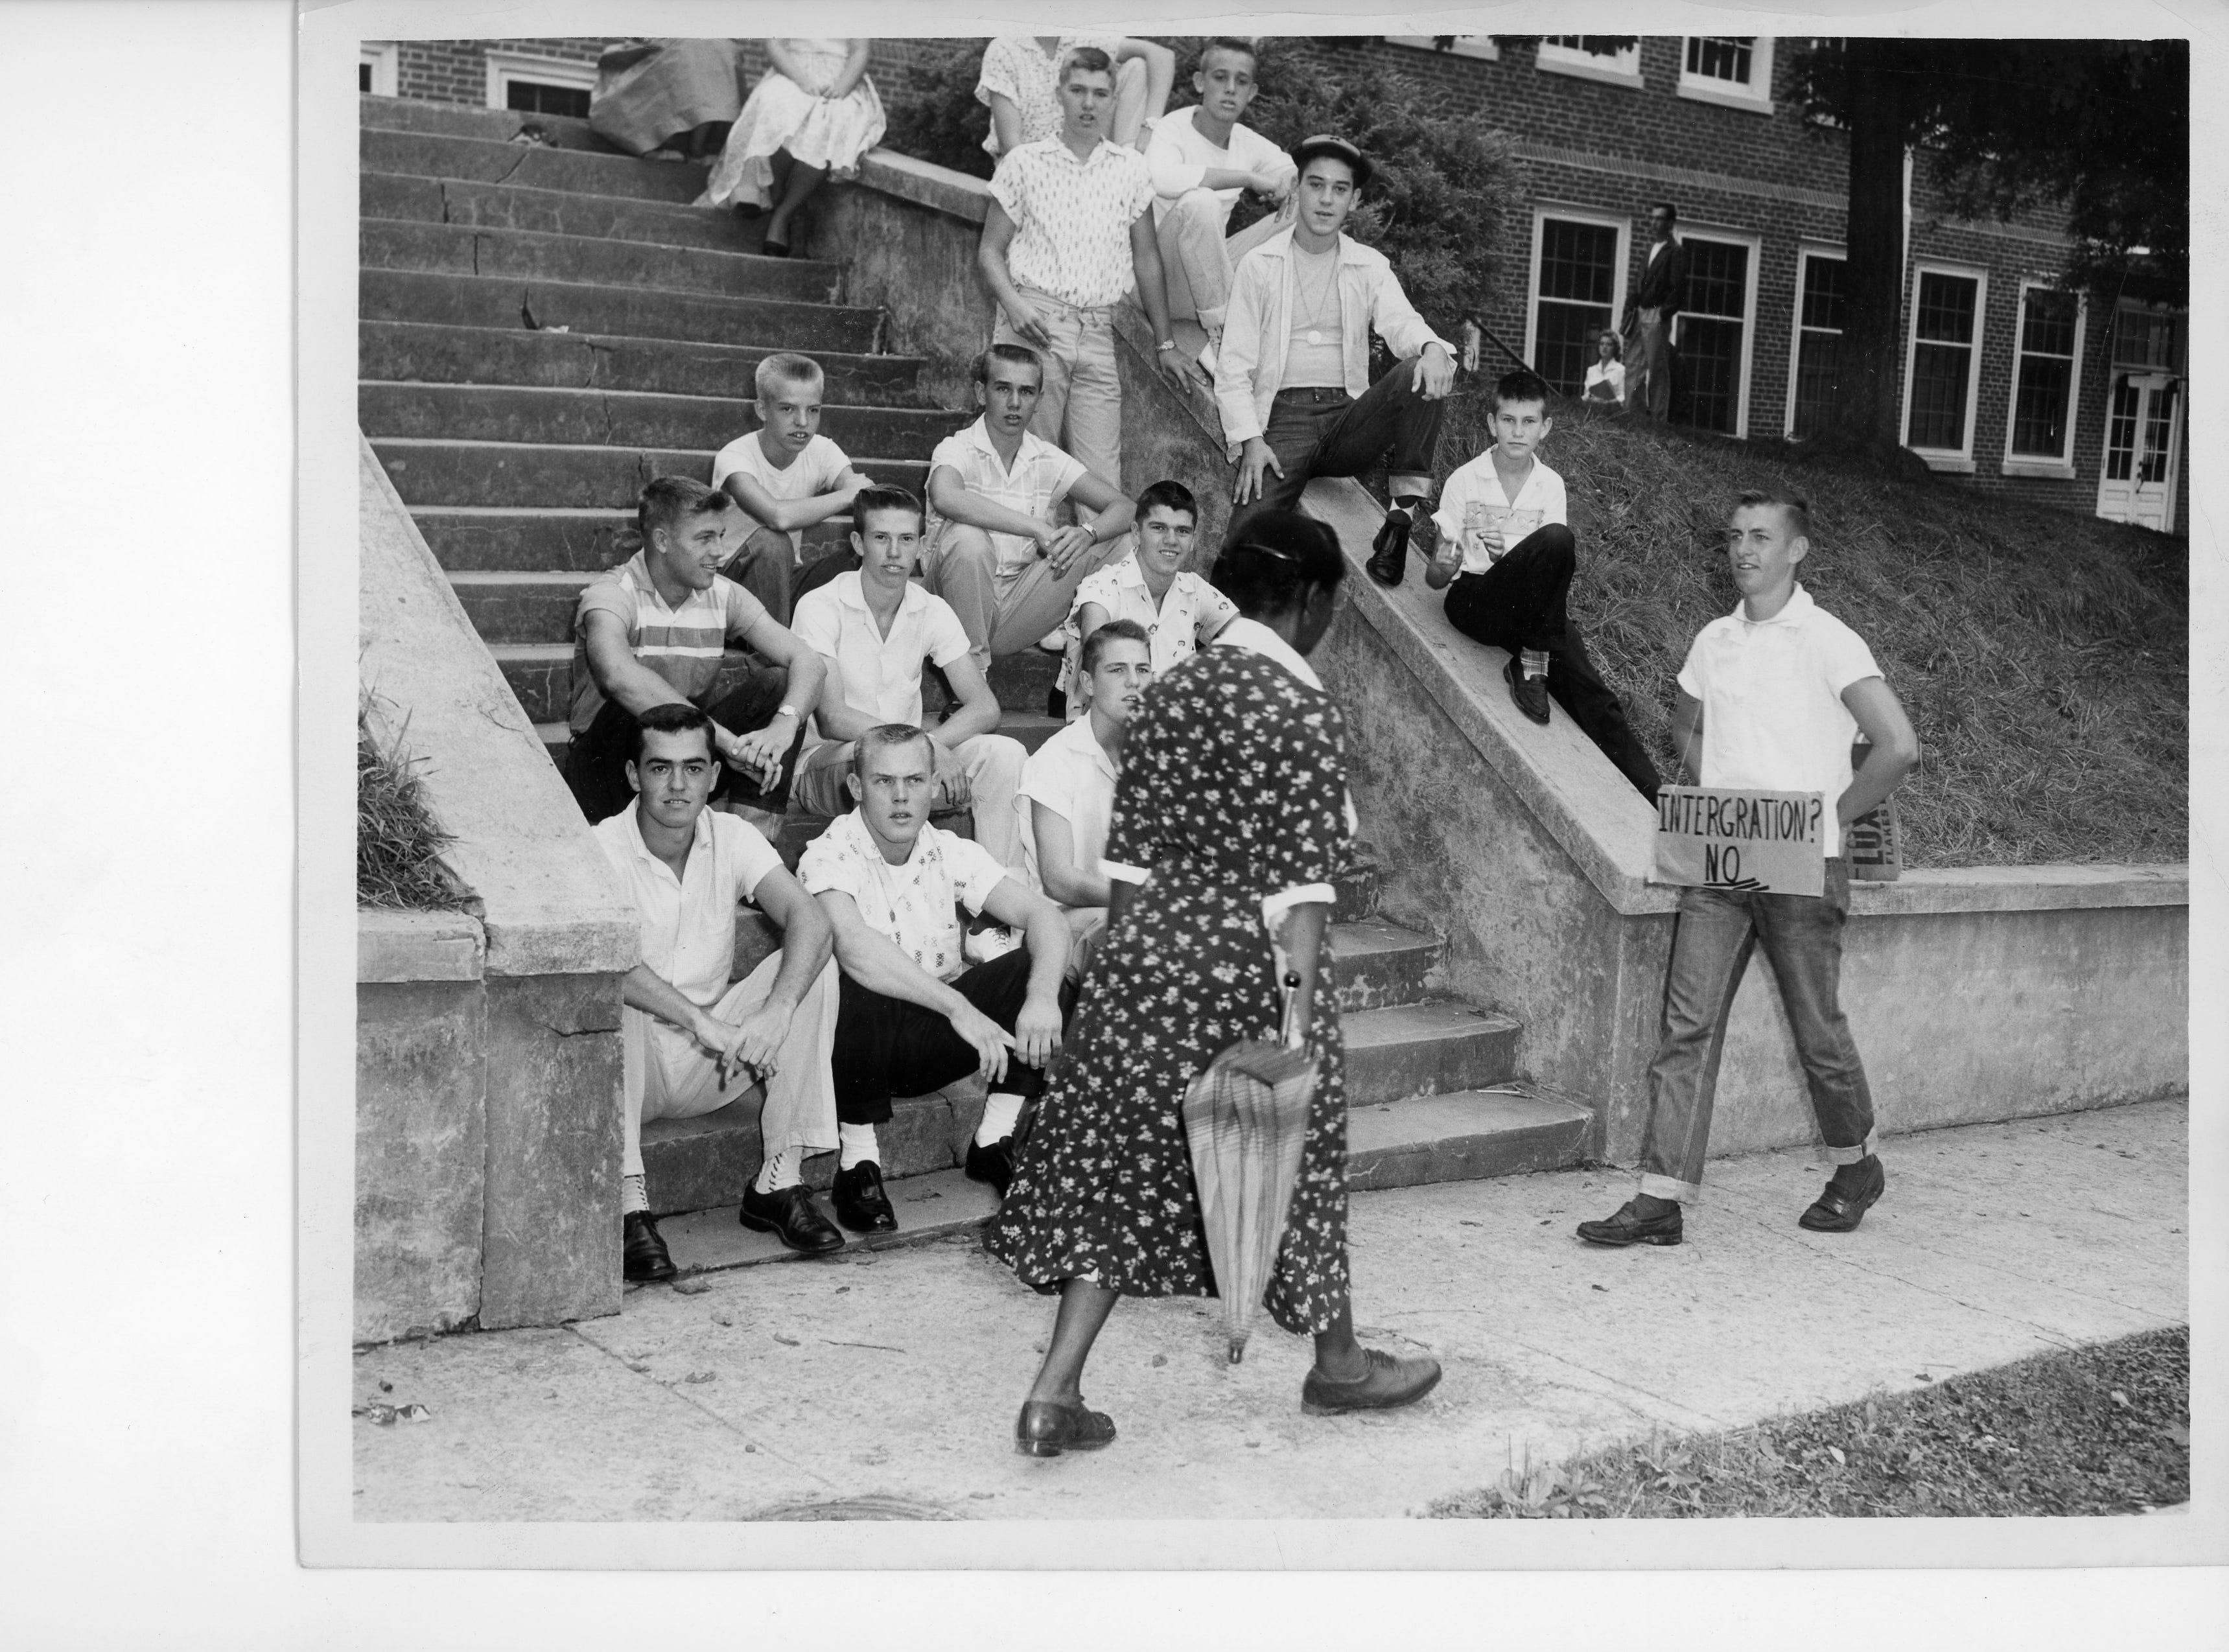 Outside Clinton High School during desegregation unrest. 9/01/1956. Photo from Knoxville News Sentinel archive.